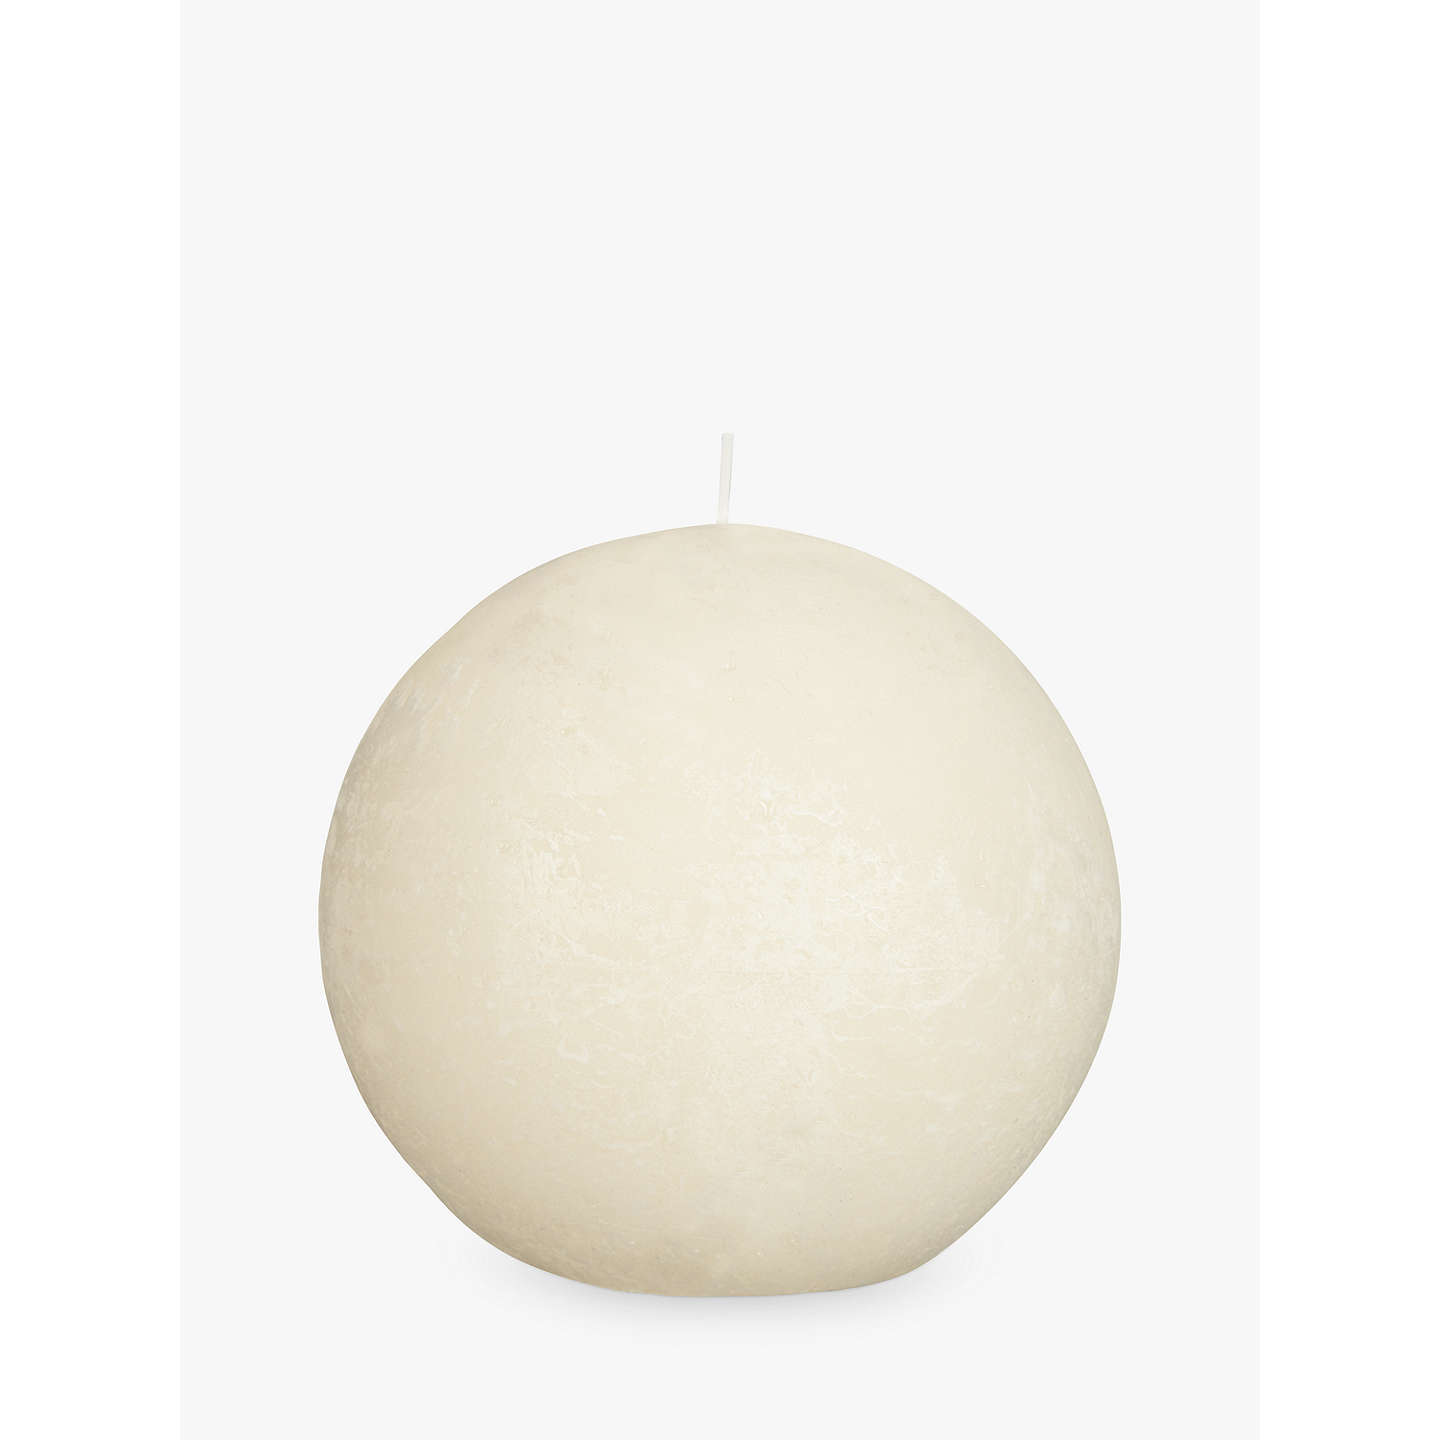 BuyJohn Lewis Rustic Effect Ball Candle, W10cm, Ivory Online at johnlewis.com